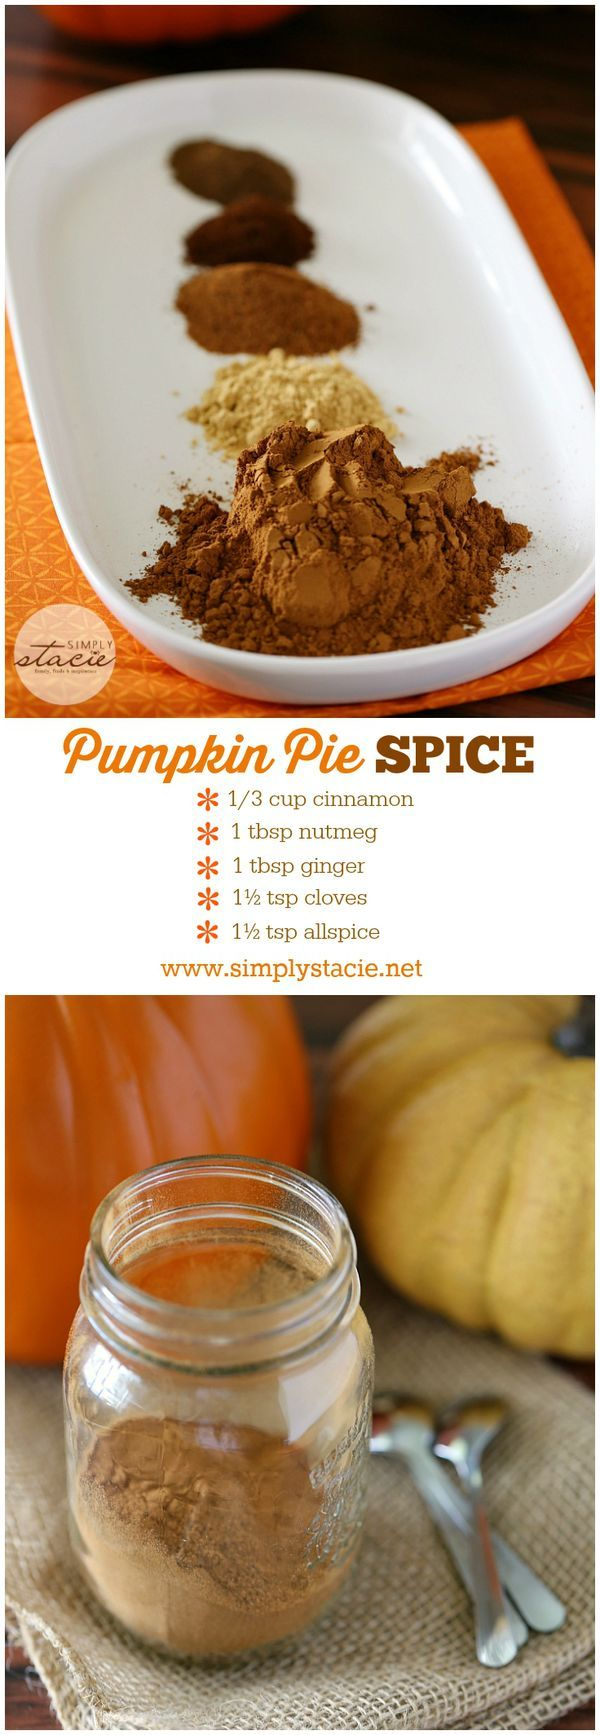 Homemade Pumpkin Pie Spice - Why buy when you can make your own? This homemade pumpkin pie spice recipe is frugal, easy and perfect to flavor your favorite pumpkin desserts!